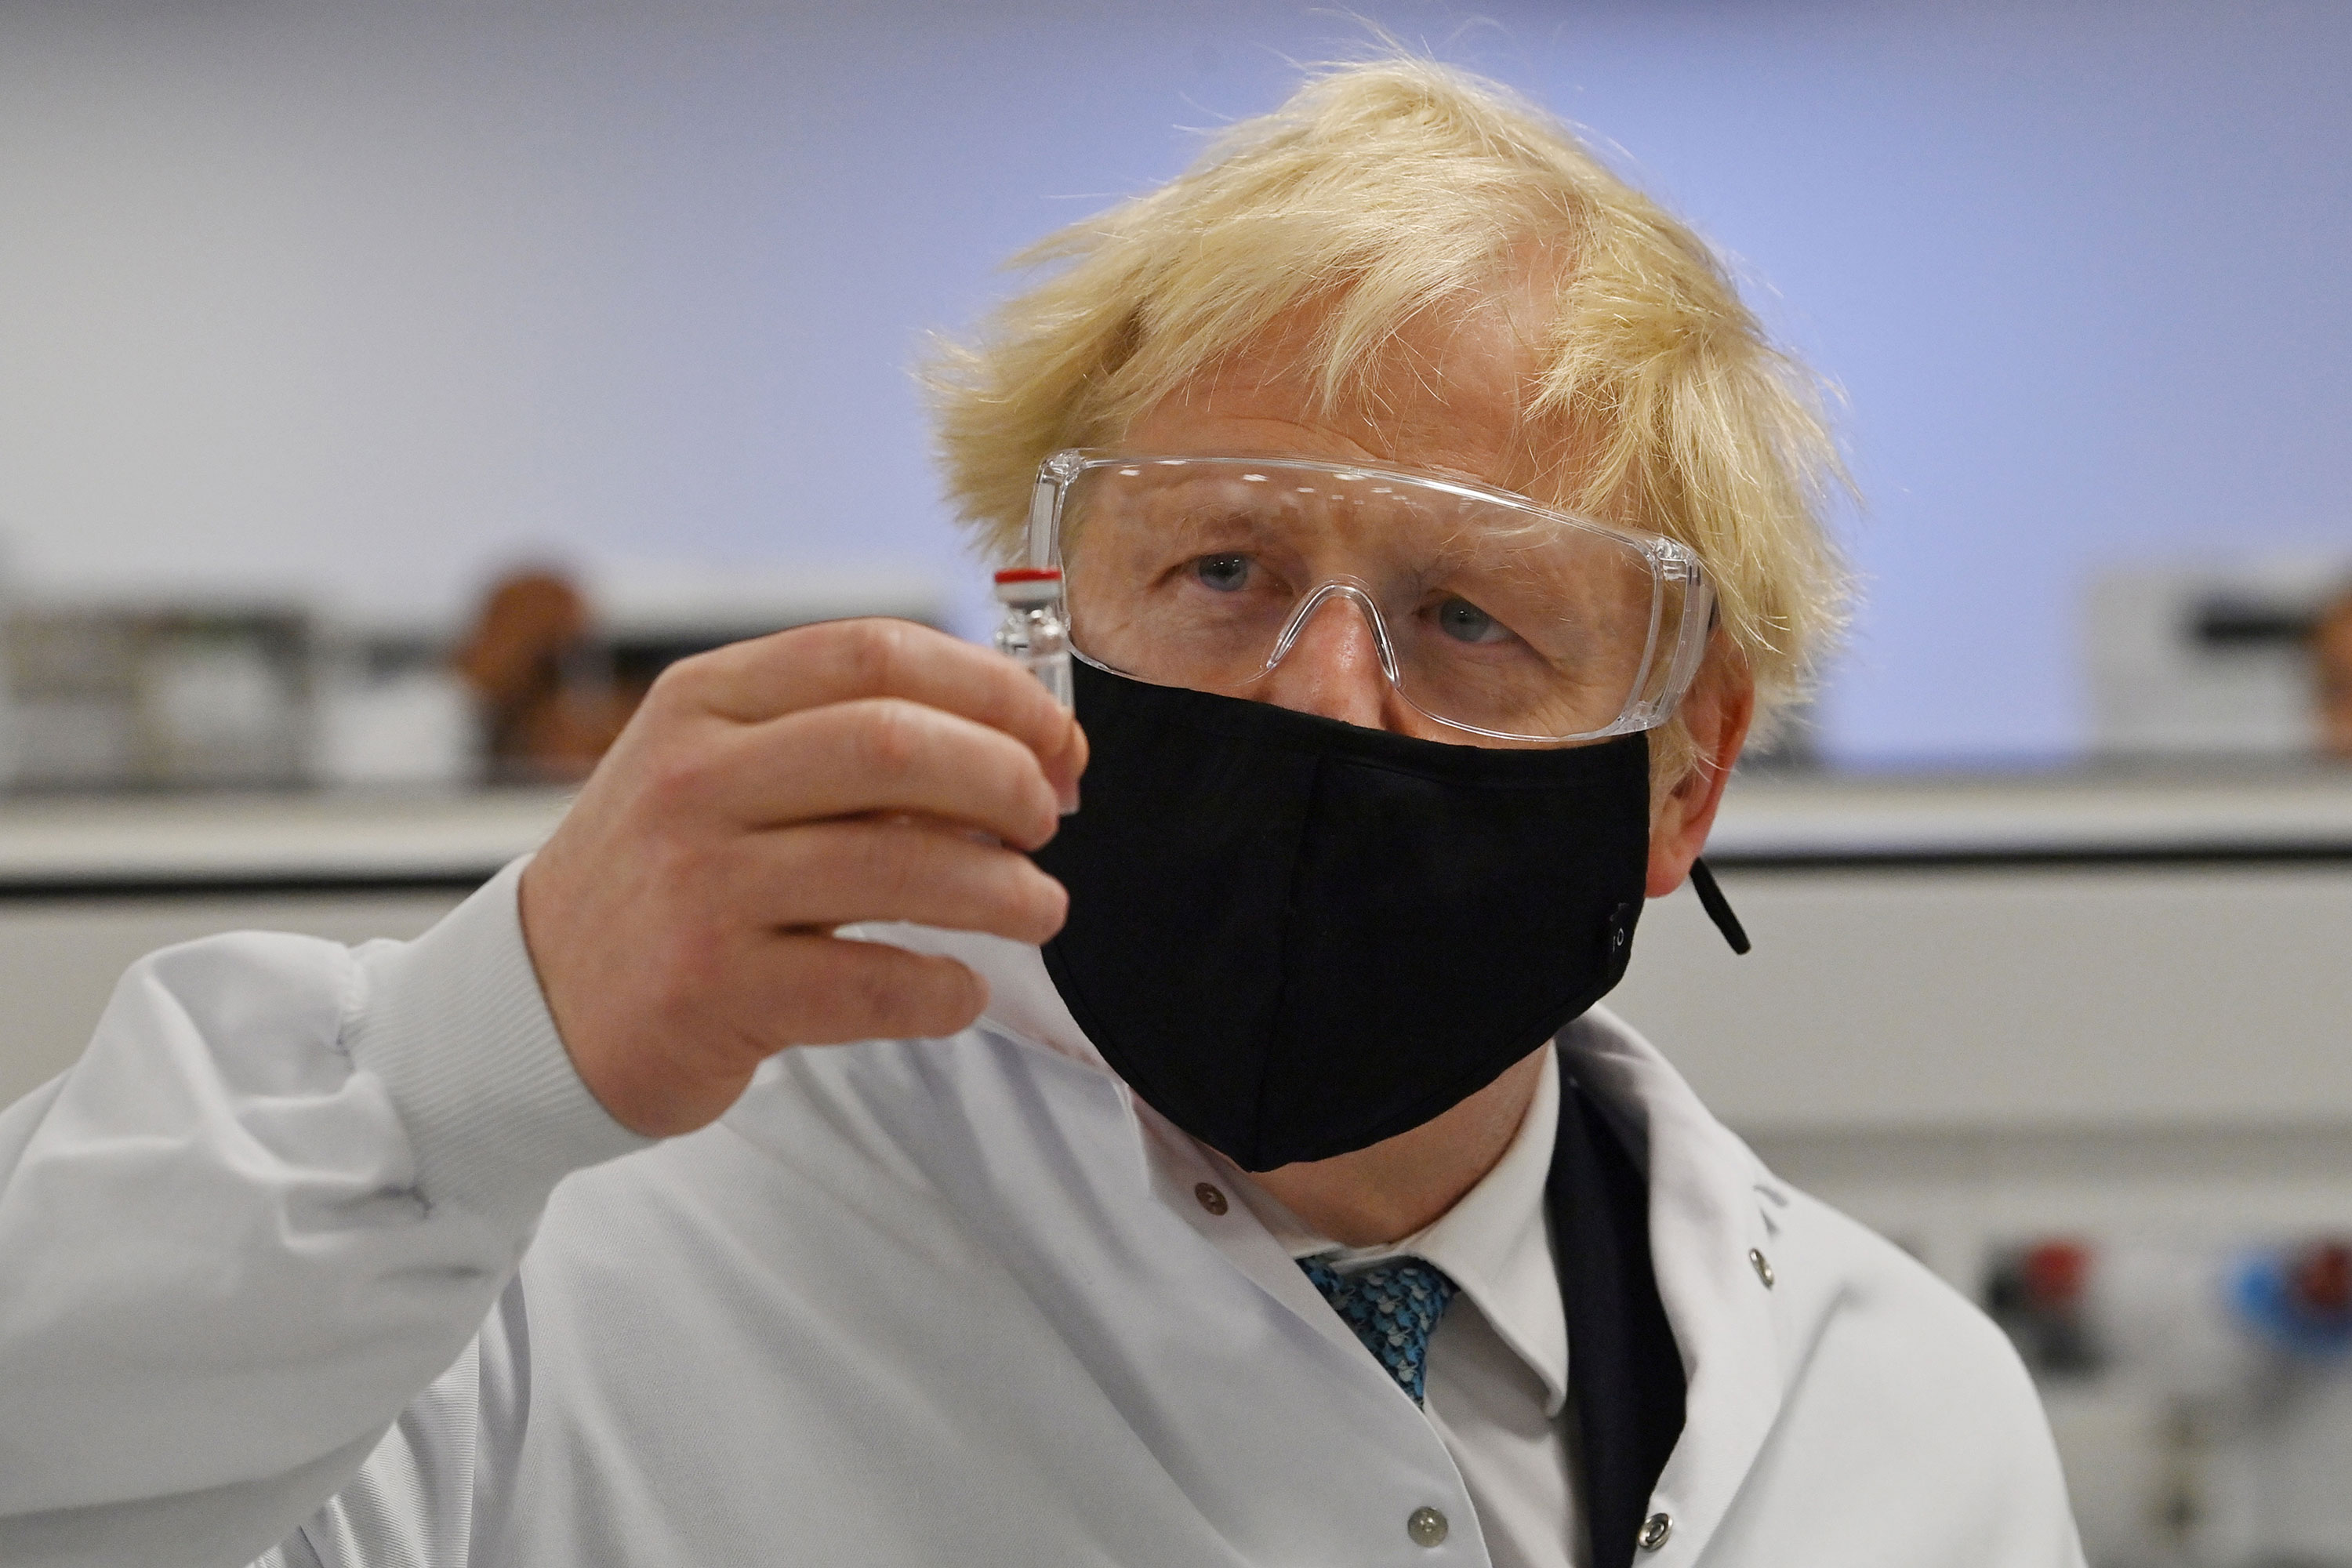 UK Prime Minister Boris Johnson poses for a photograph with a vial of the Oxford-AstraZeneca Covid-19 vaccine at Wockhardt's pharmaceutical manufacturing facility in Wrexham, Wales, on November 30.